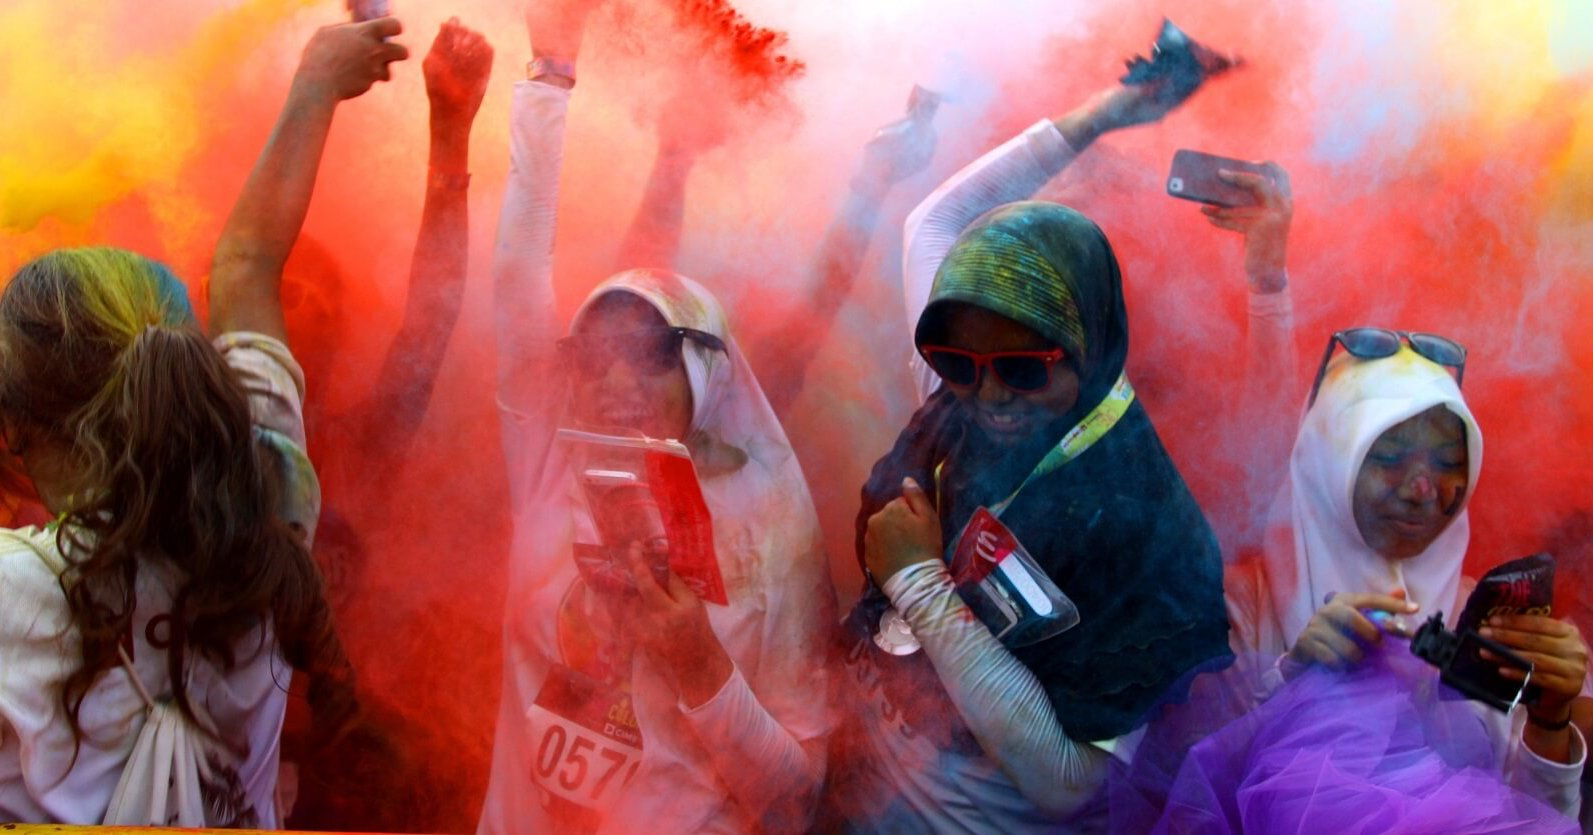 Participants in the Colour Run event, Jakarta, Indonesia, August 2016 (Photo: Natanael Pohan via Getty)